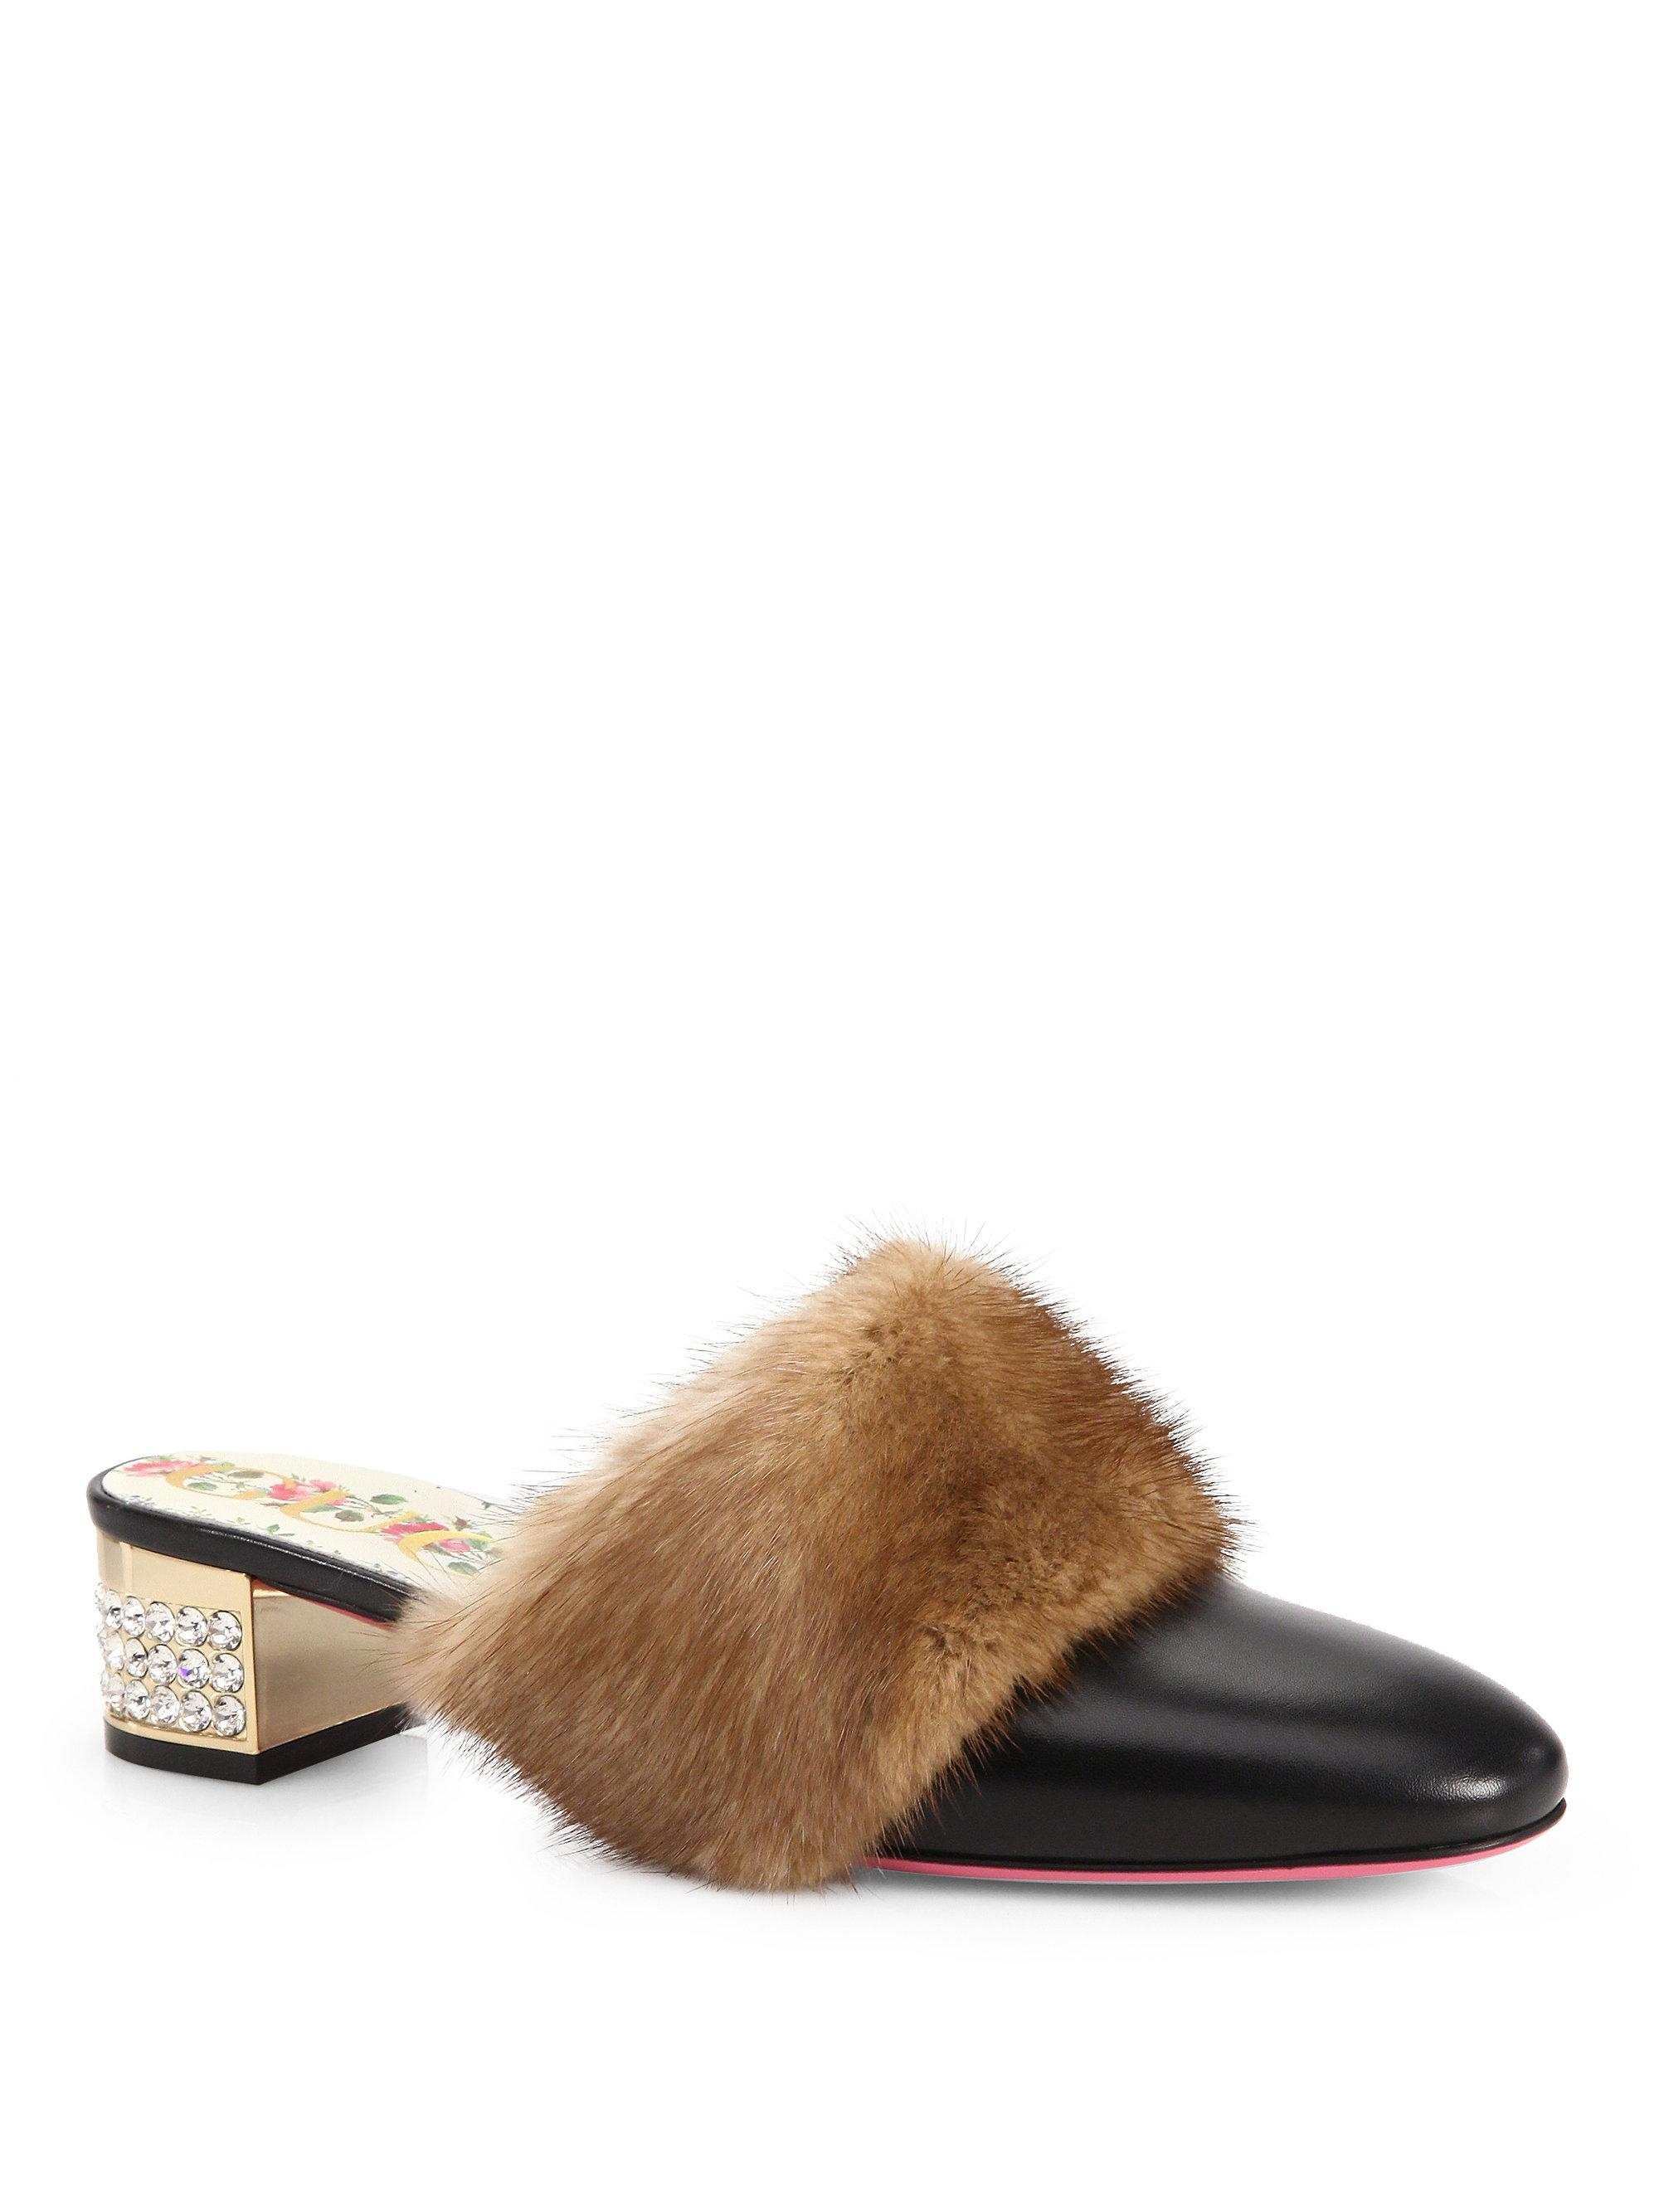 Gucci Loafer Mules leather crystals mink brown xigJE